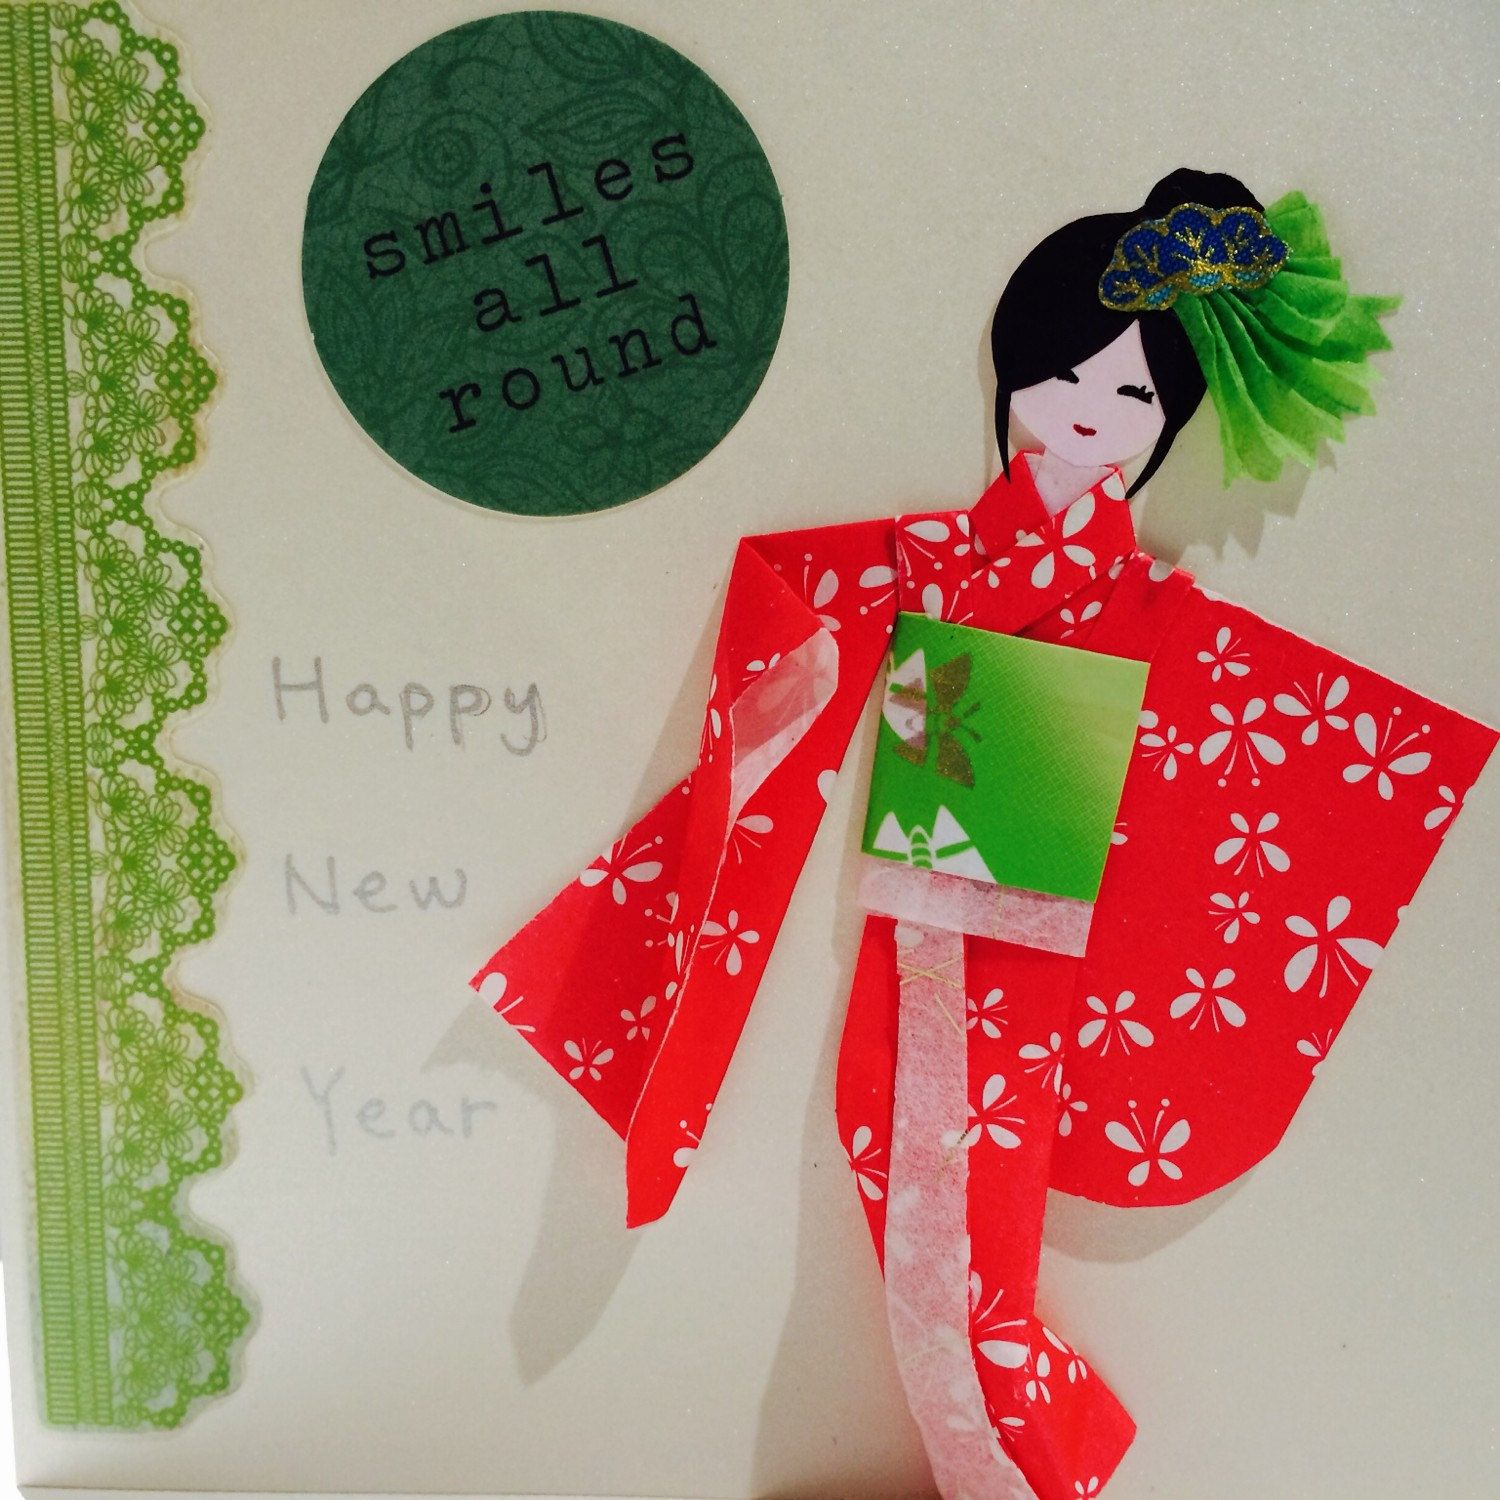 This Is A New Year Greeting Card With An Adorable Japanese Paper